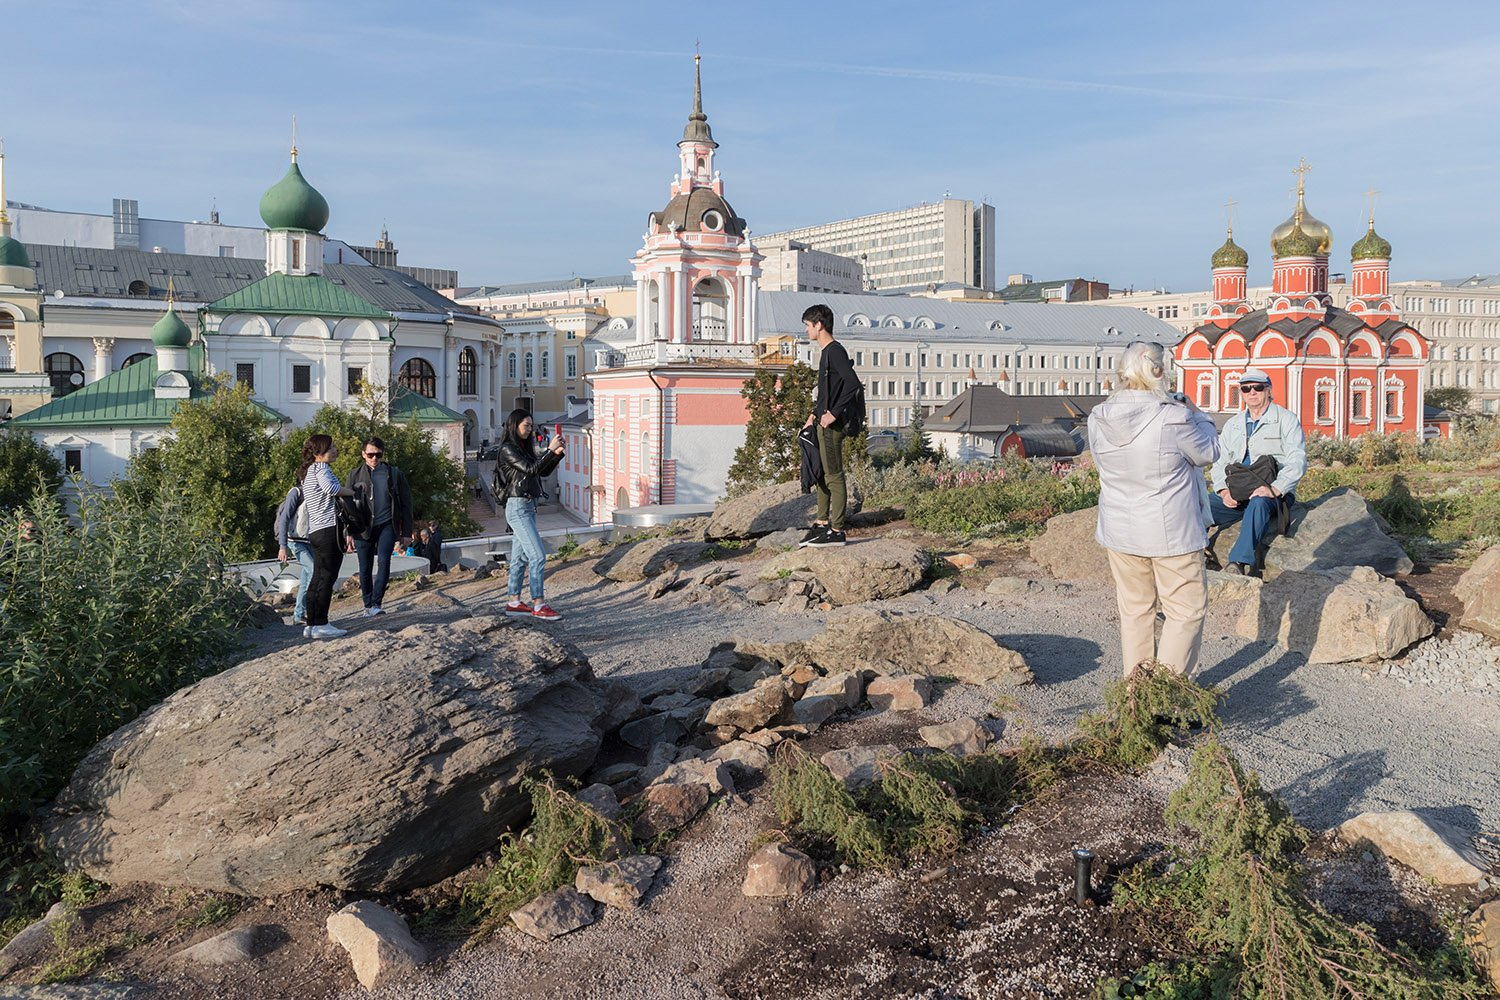 Tundra / Northern Landscape Zone: View of Historic Churches, Zaryadye Park Photography by Iwan Baan